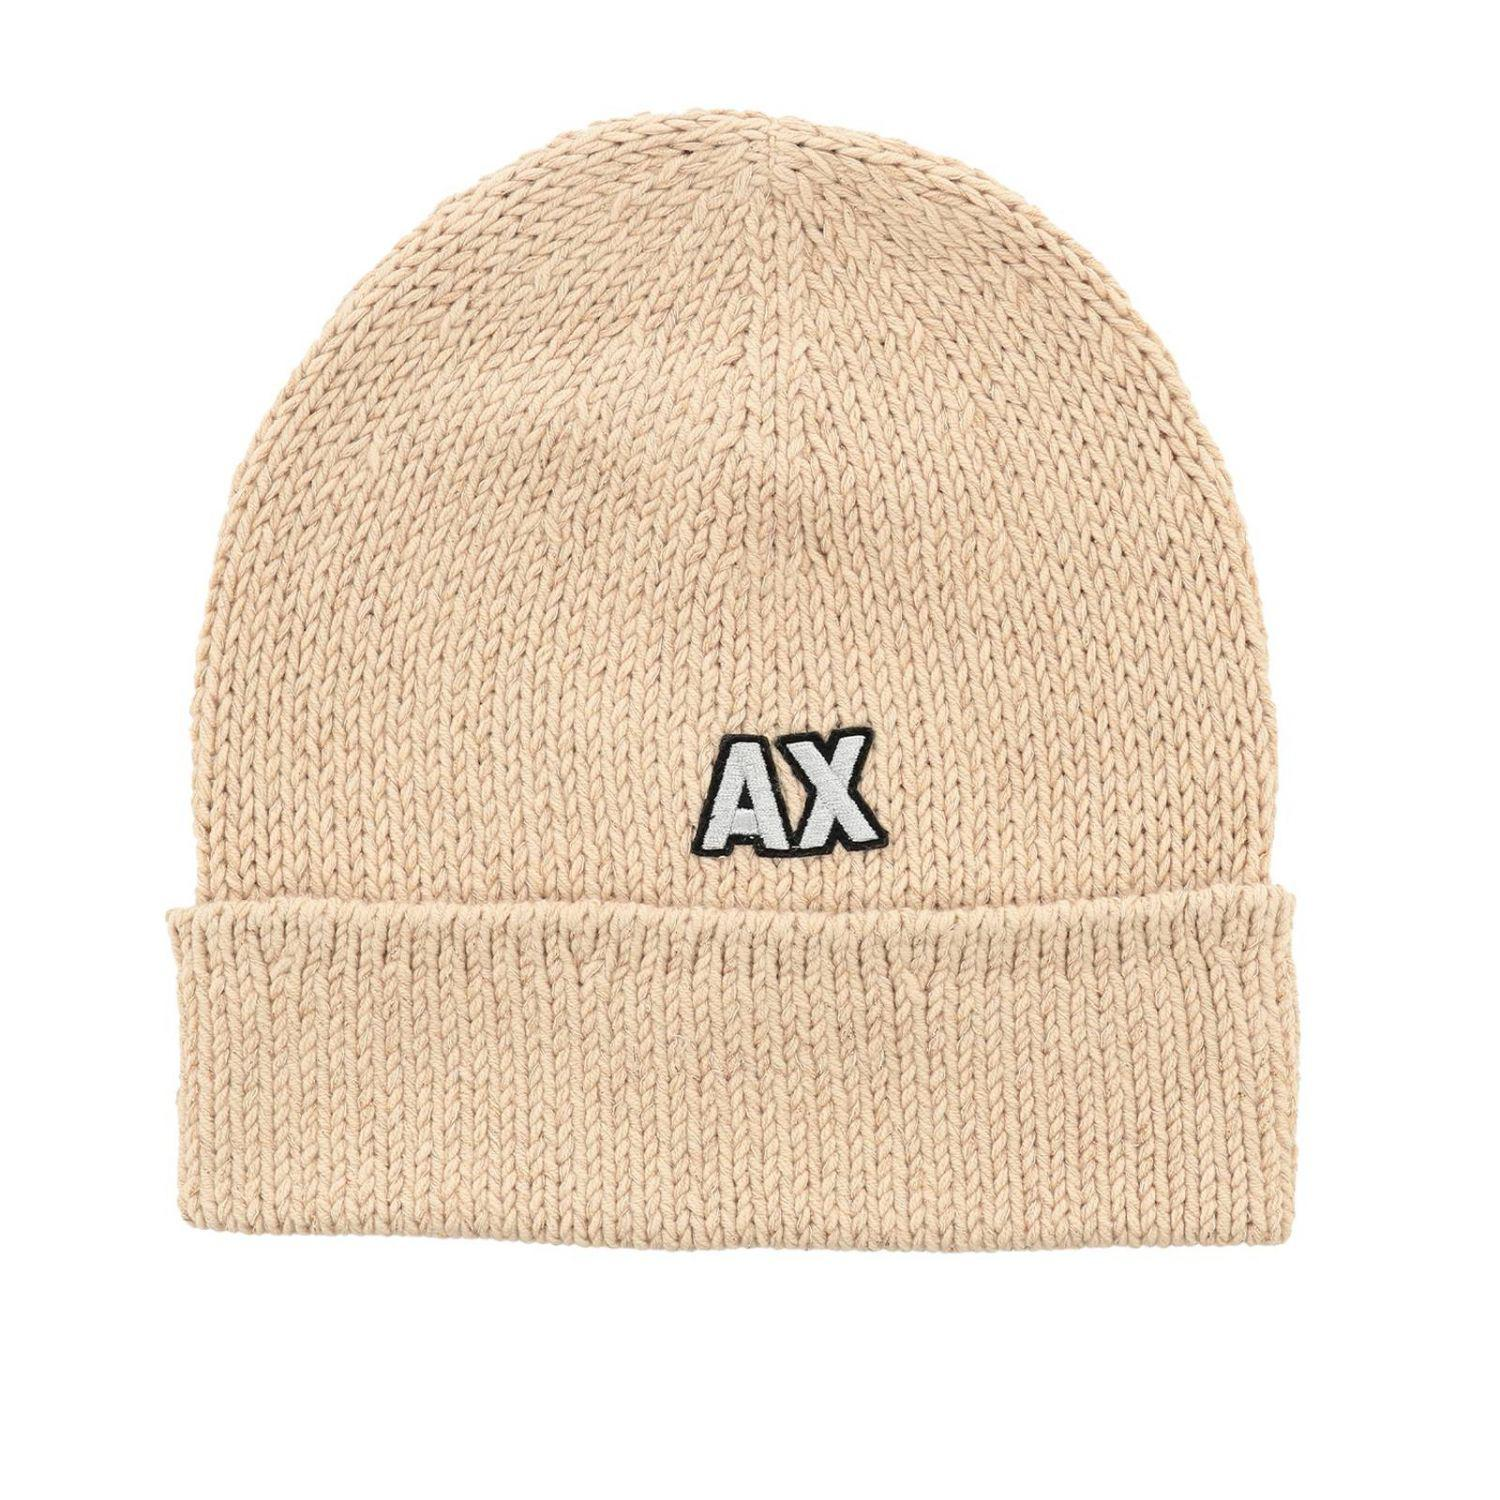 43333f7a998 Armani Exchange Hat Women in Natural - Lyst